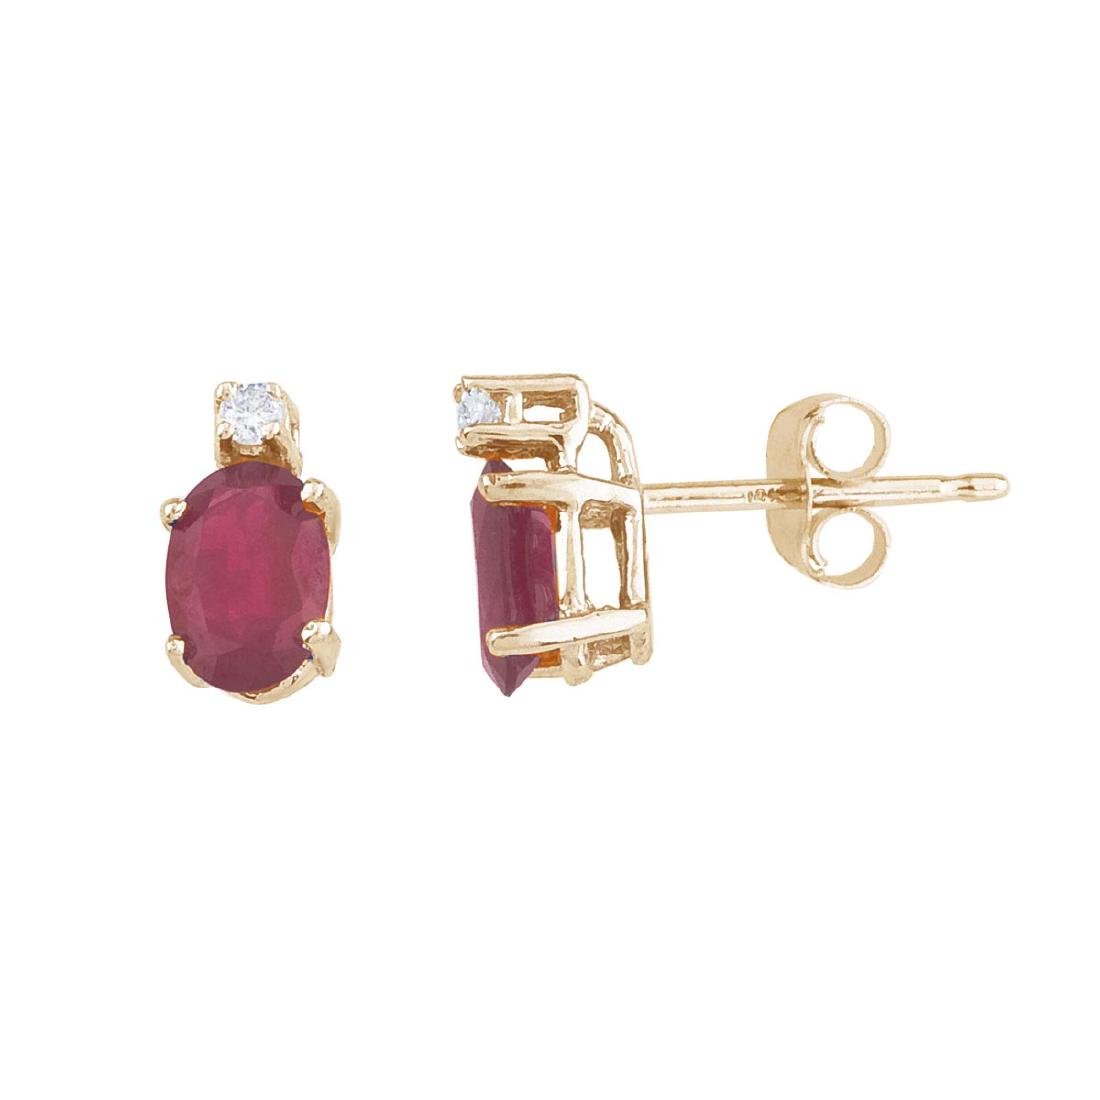 Certified 14k Yellow Gold Ruby And Diamond Earrings